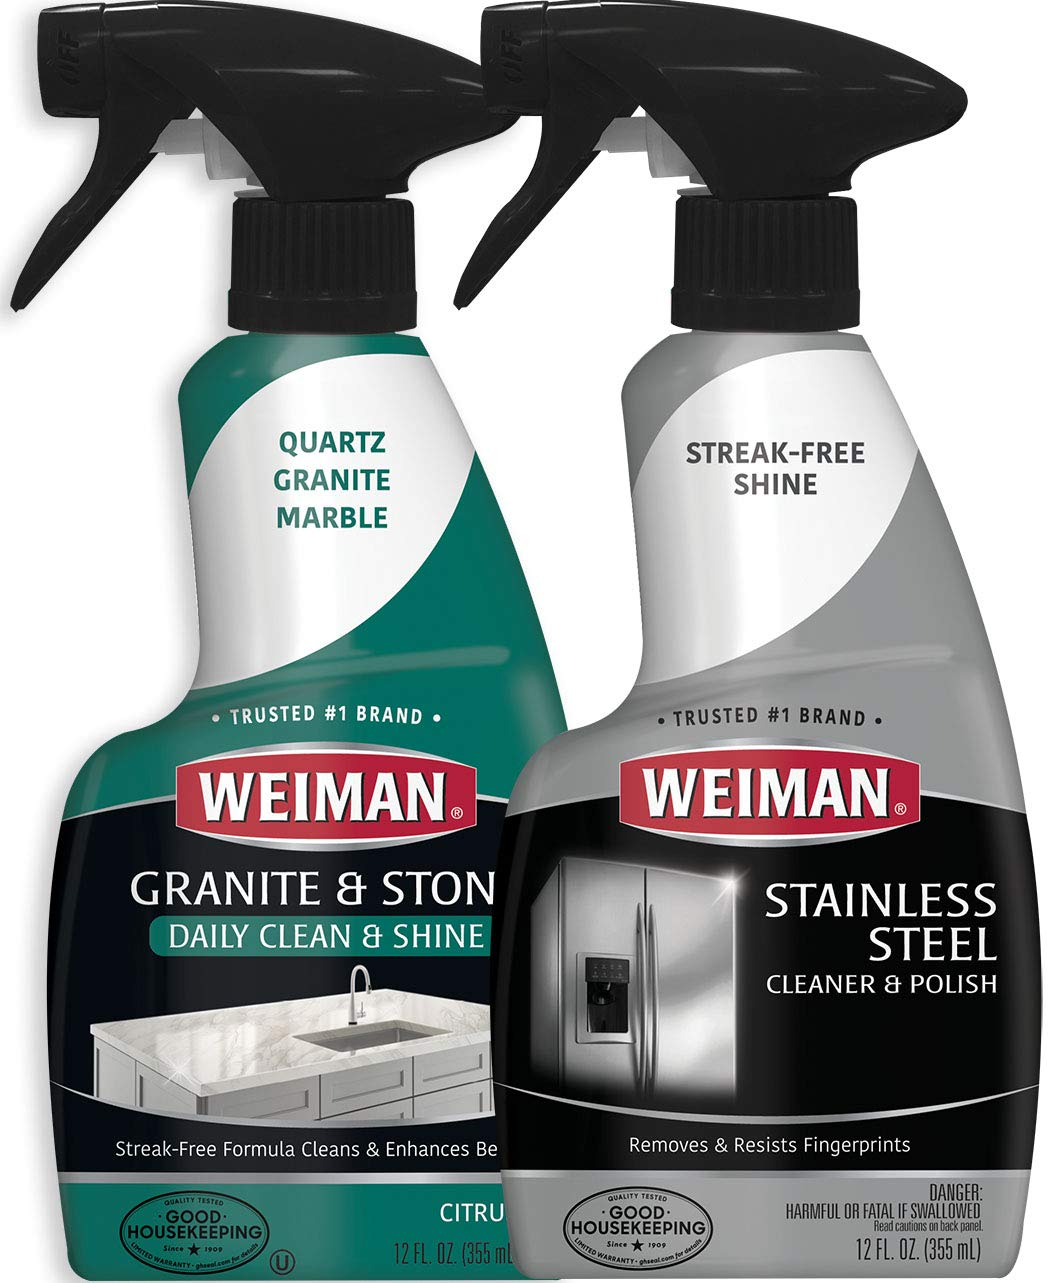 Weiman Stainless Steel & Granite Cleaner - 12 Ounce - for Countertop and Appliance Protect from Fingerprints Granite Cleaner and Polish - Enhance The Natural Beauty of Your Stone Surface - 12 Ounce by Weiman